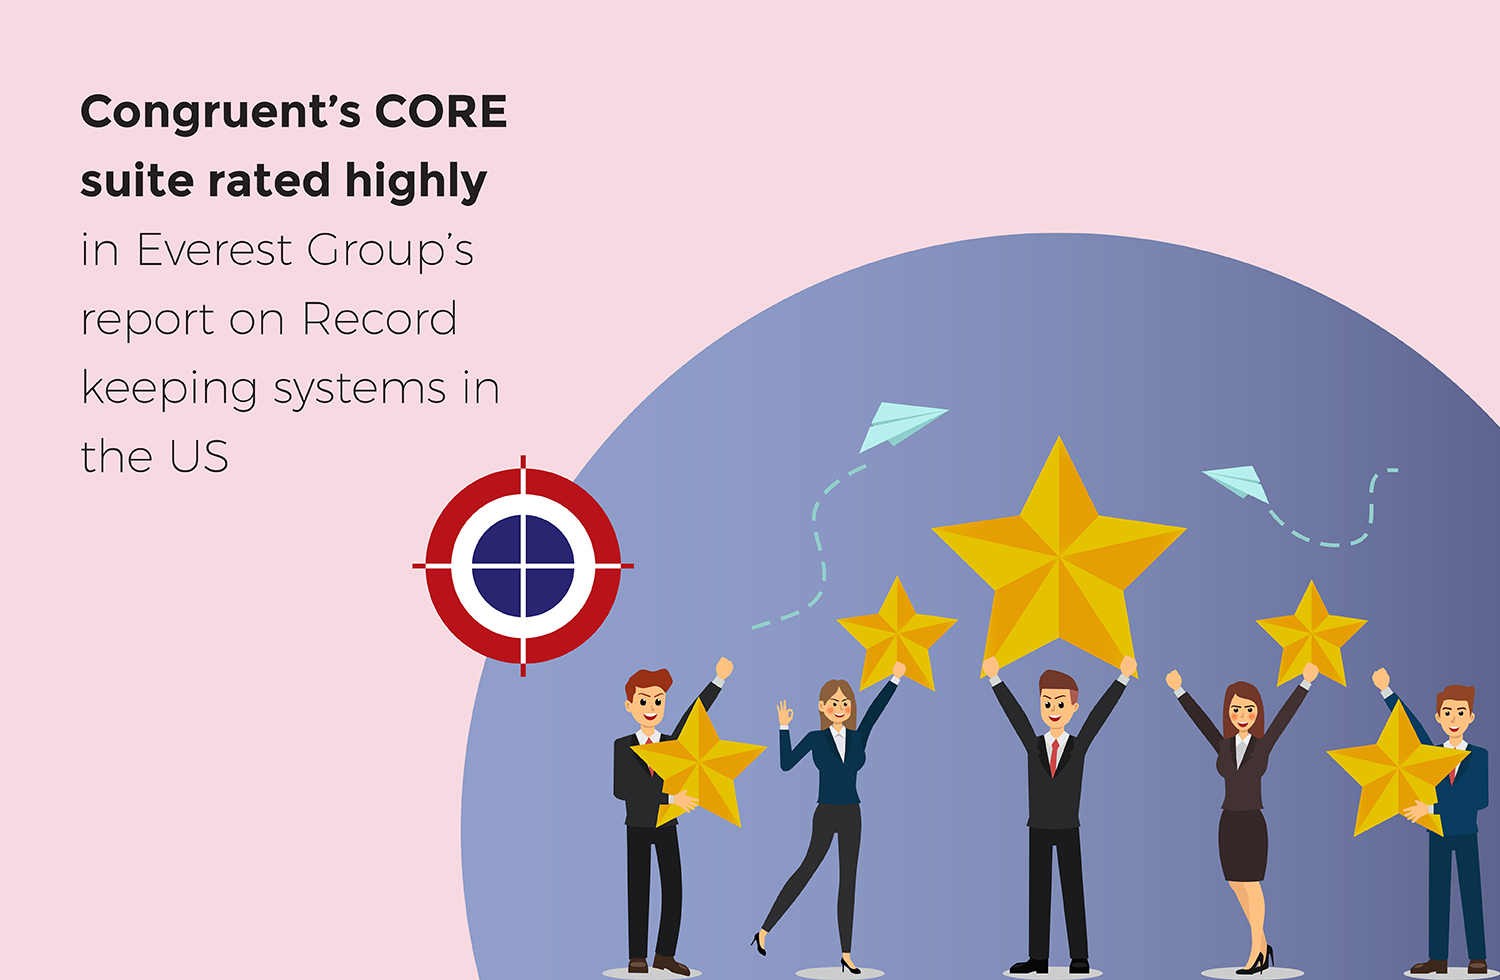 Congruent's CORE suite gets recognition in Everest Group's report on cloud-enabled record-keeping systems in the US